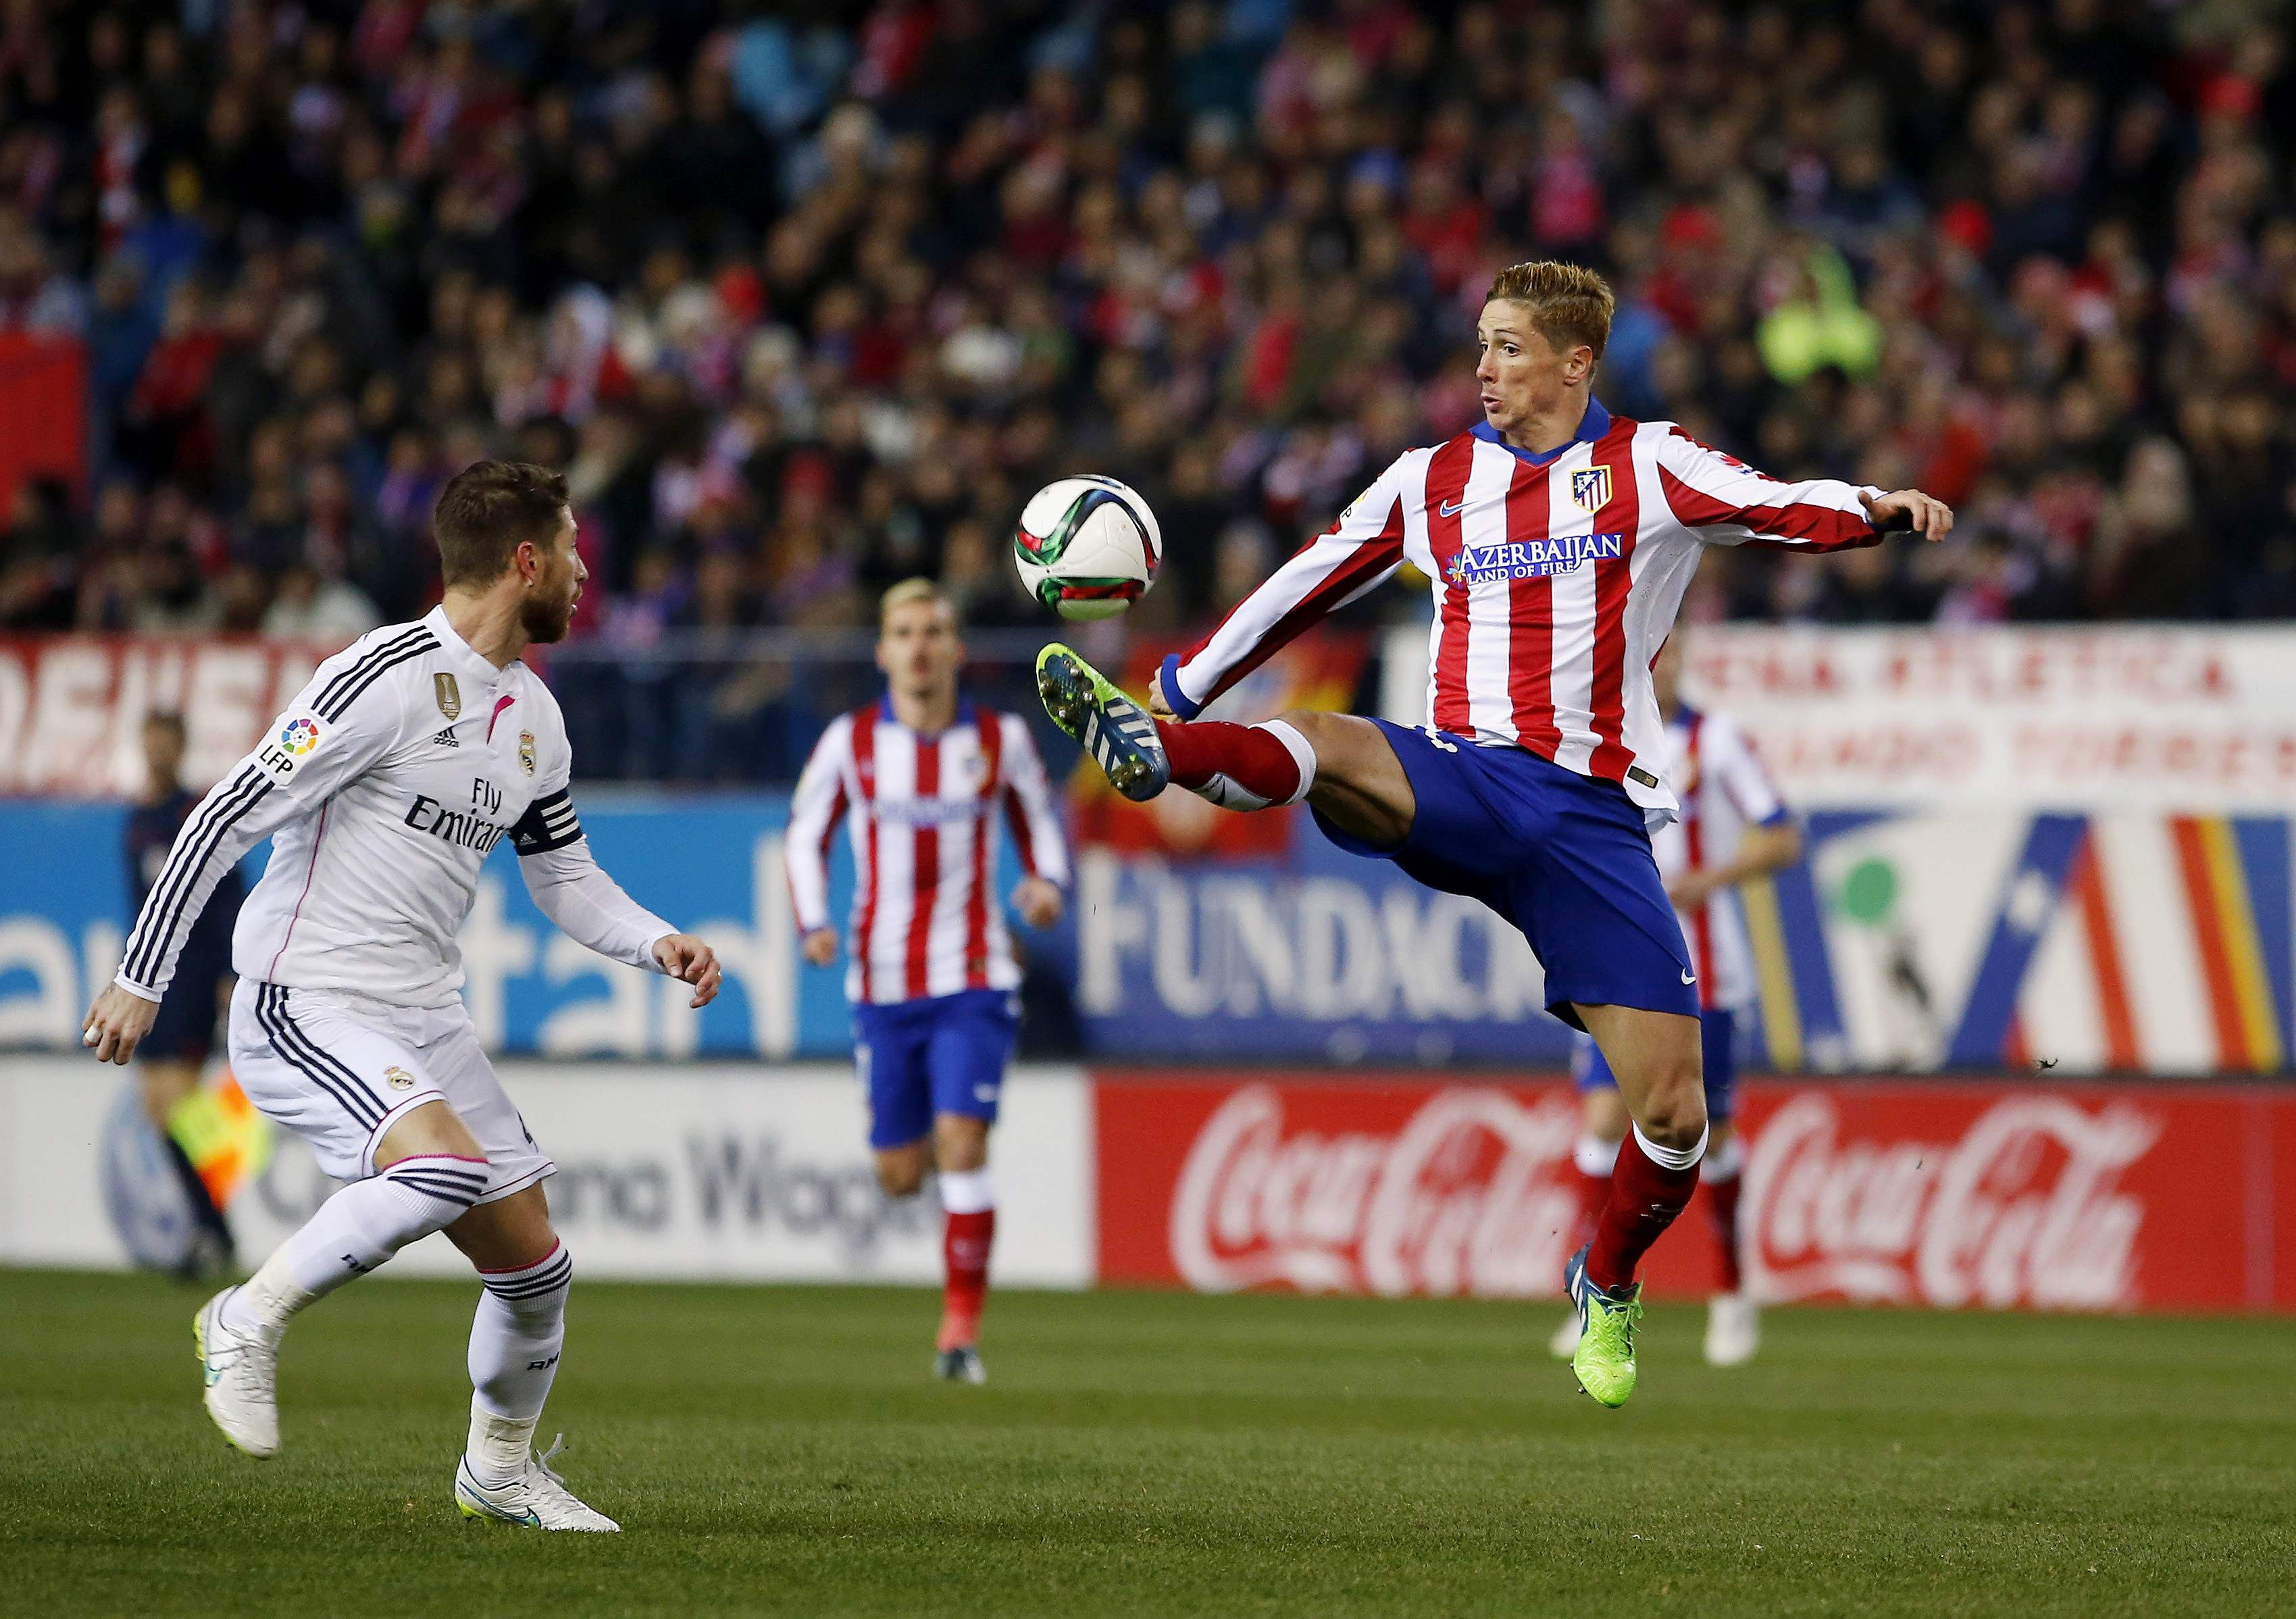 Torres subdued on return but Atletico sink Real